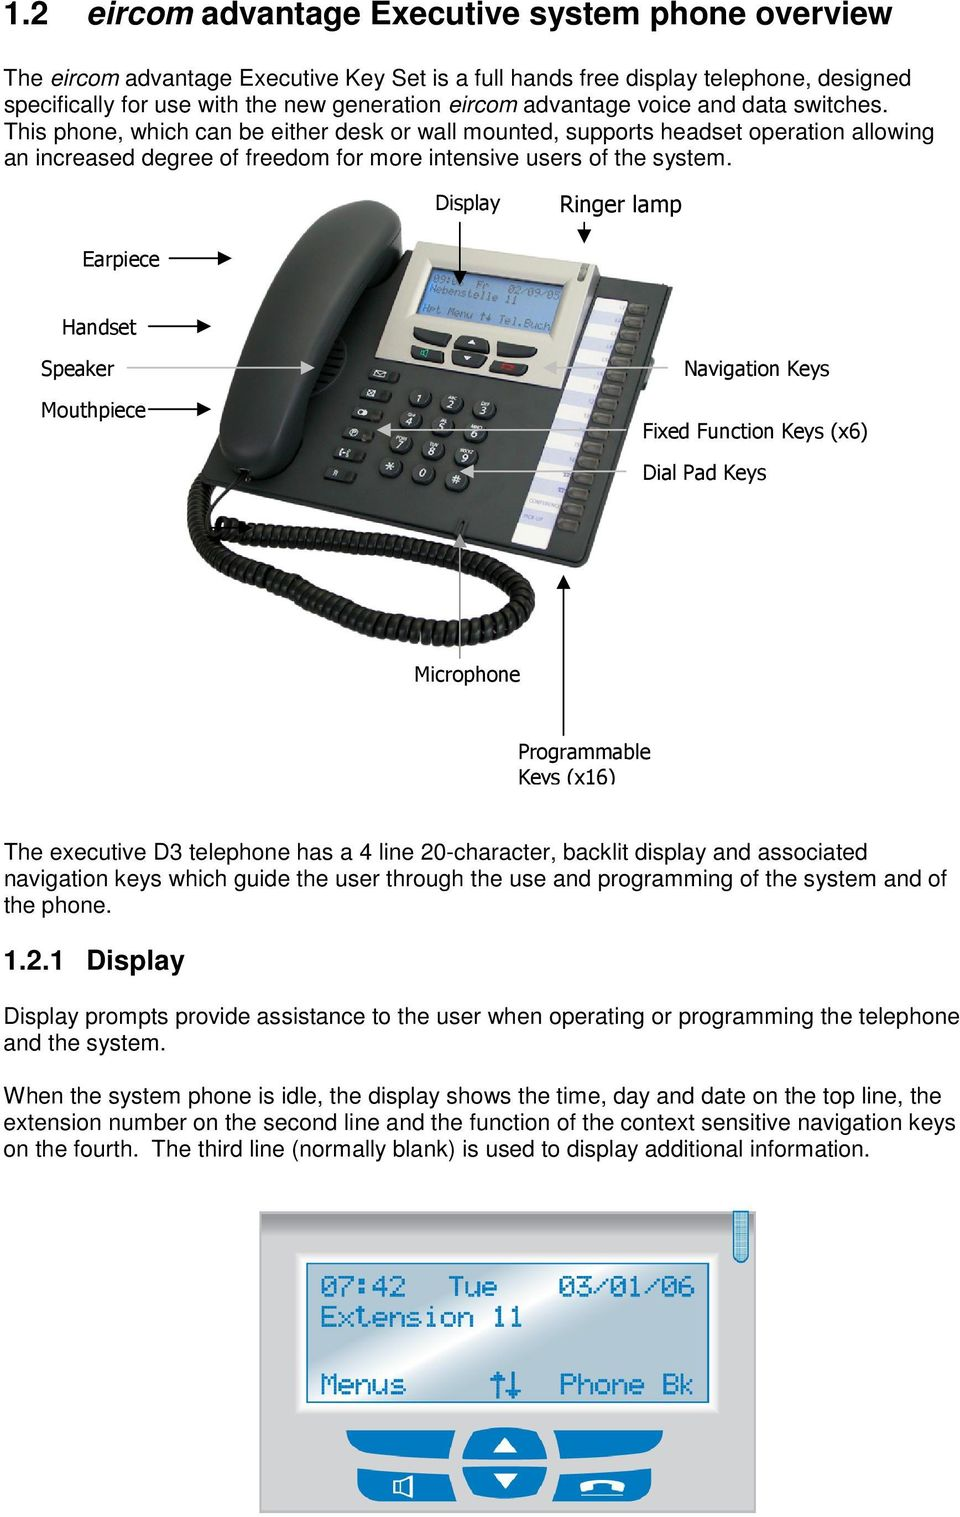 Display Ringer lamp Earpiece Handset Speaker Mouthpiece Navigation Keys Fixed Function Keys (x6) Dial Pad Keys Microphone Programmable Keys (x16) The executive D3 telephone has a 4 line 20-character,